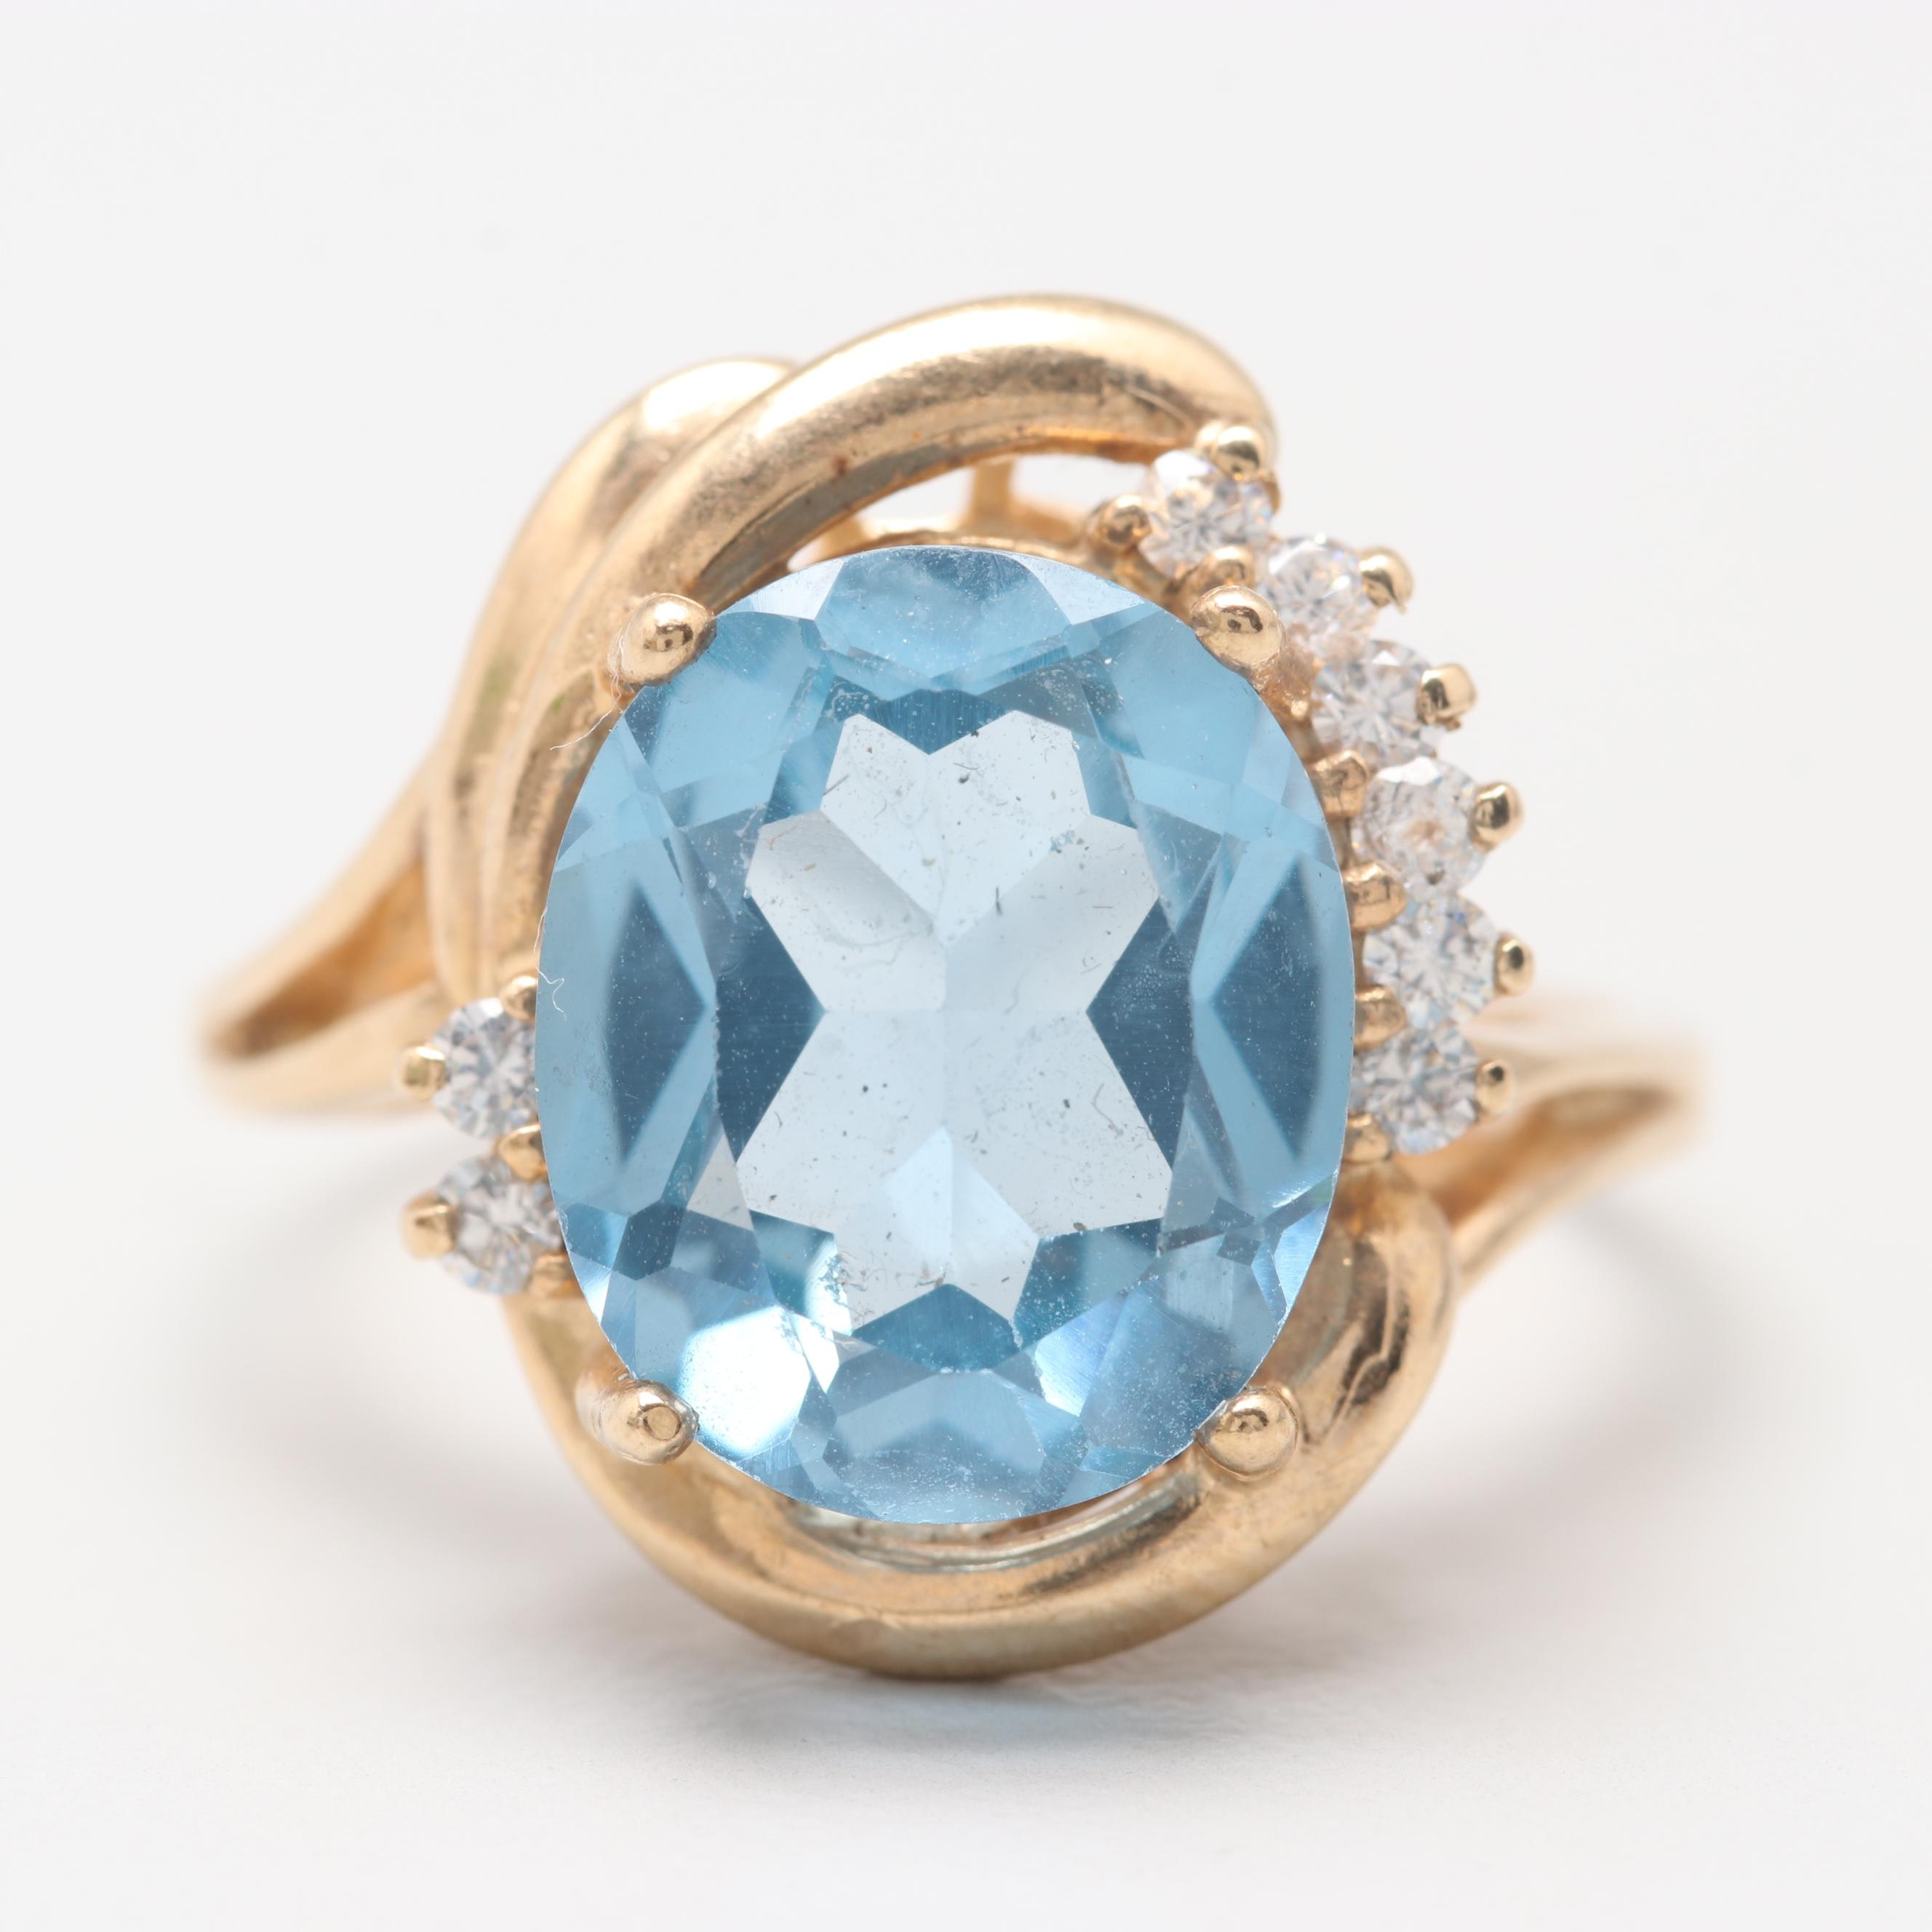 10K Yellow Gold Synthetic Spinel and Cubic Zirconia Ring